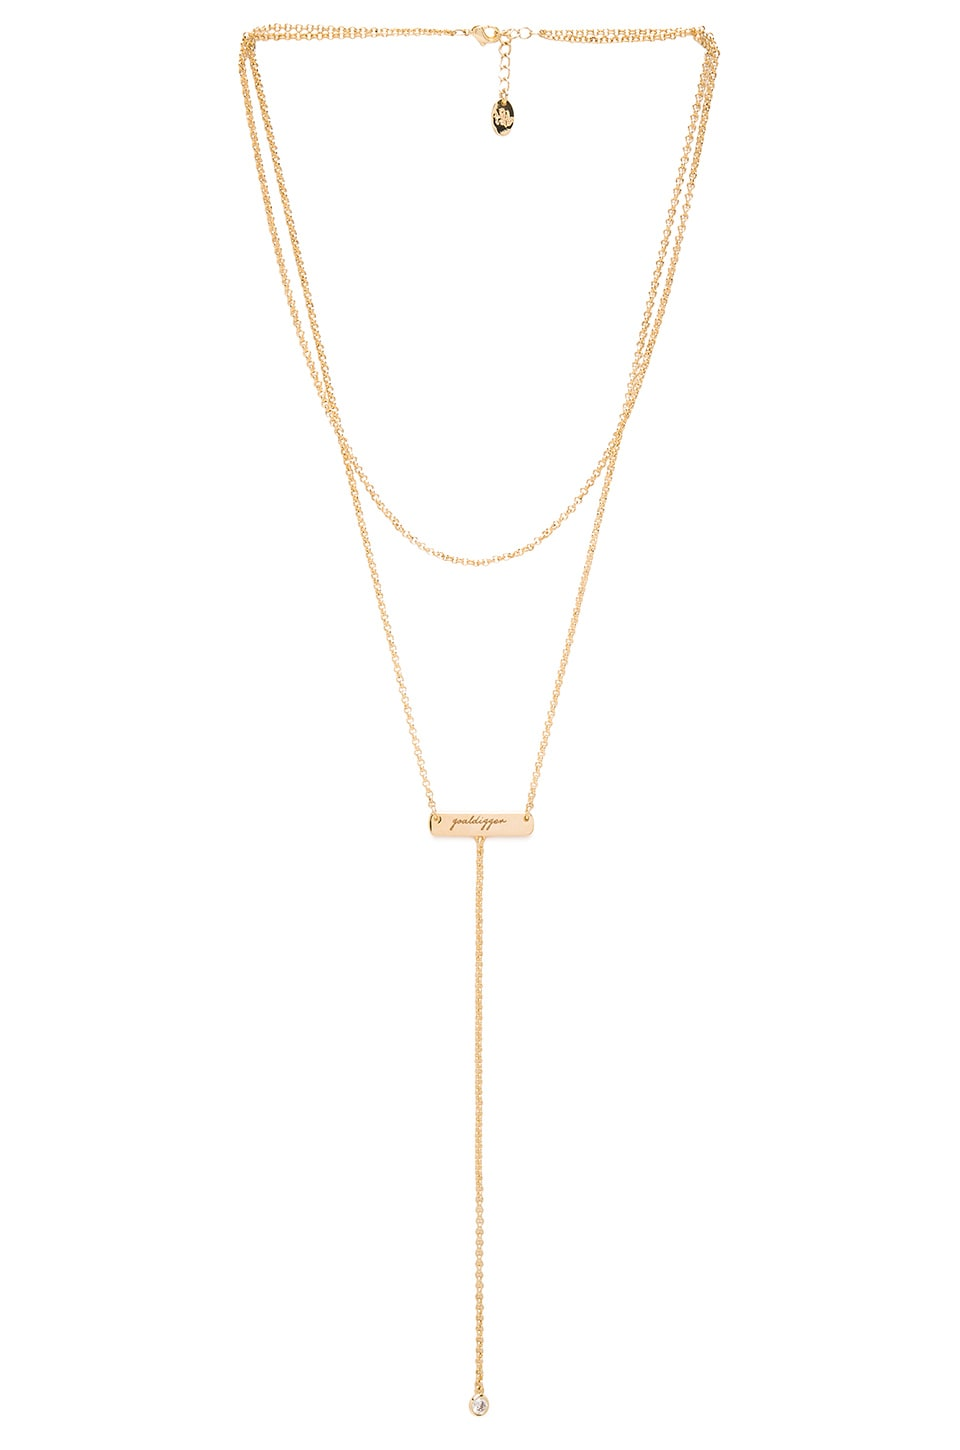 Tawnie & Brina Bar Goaldigger Lariat Necklace in Gold